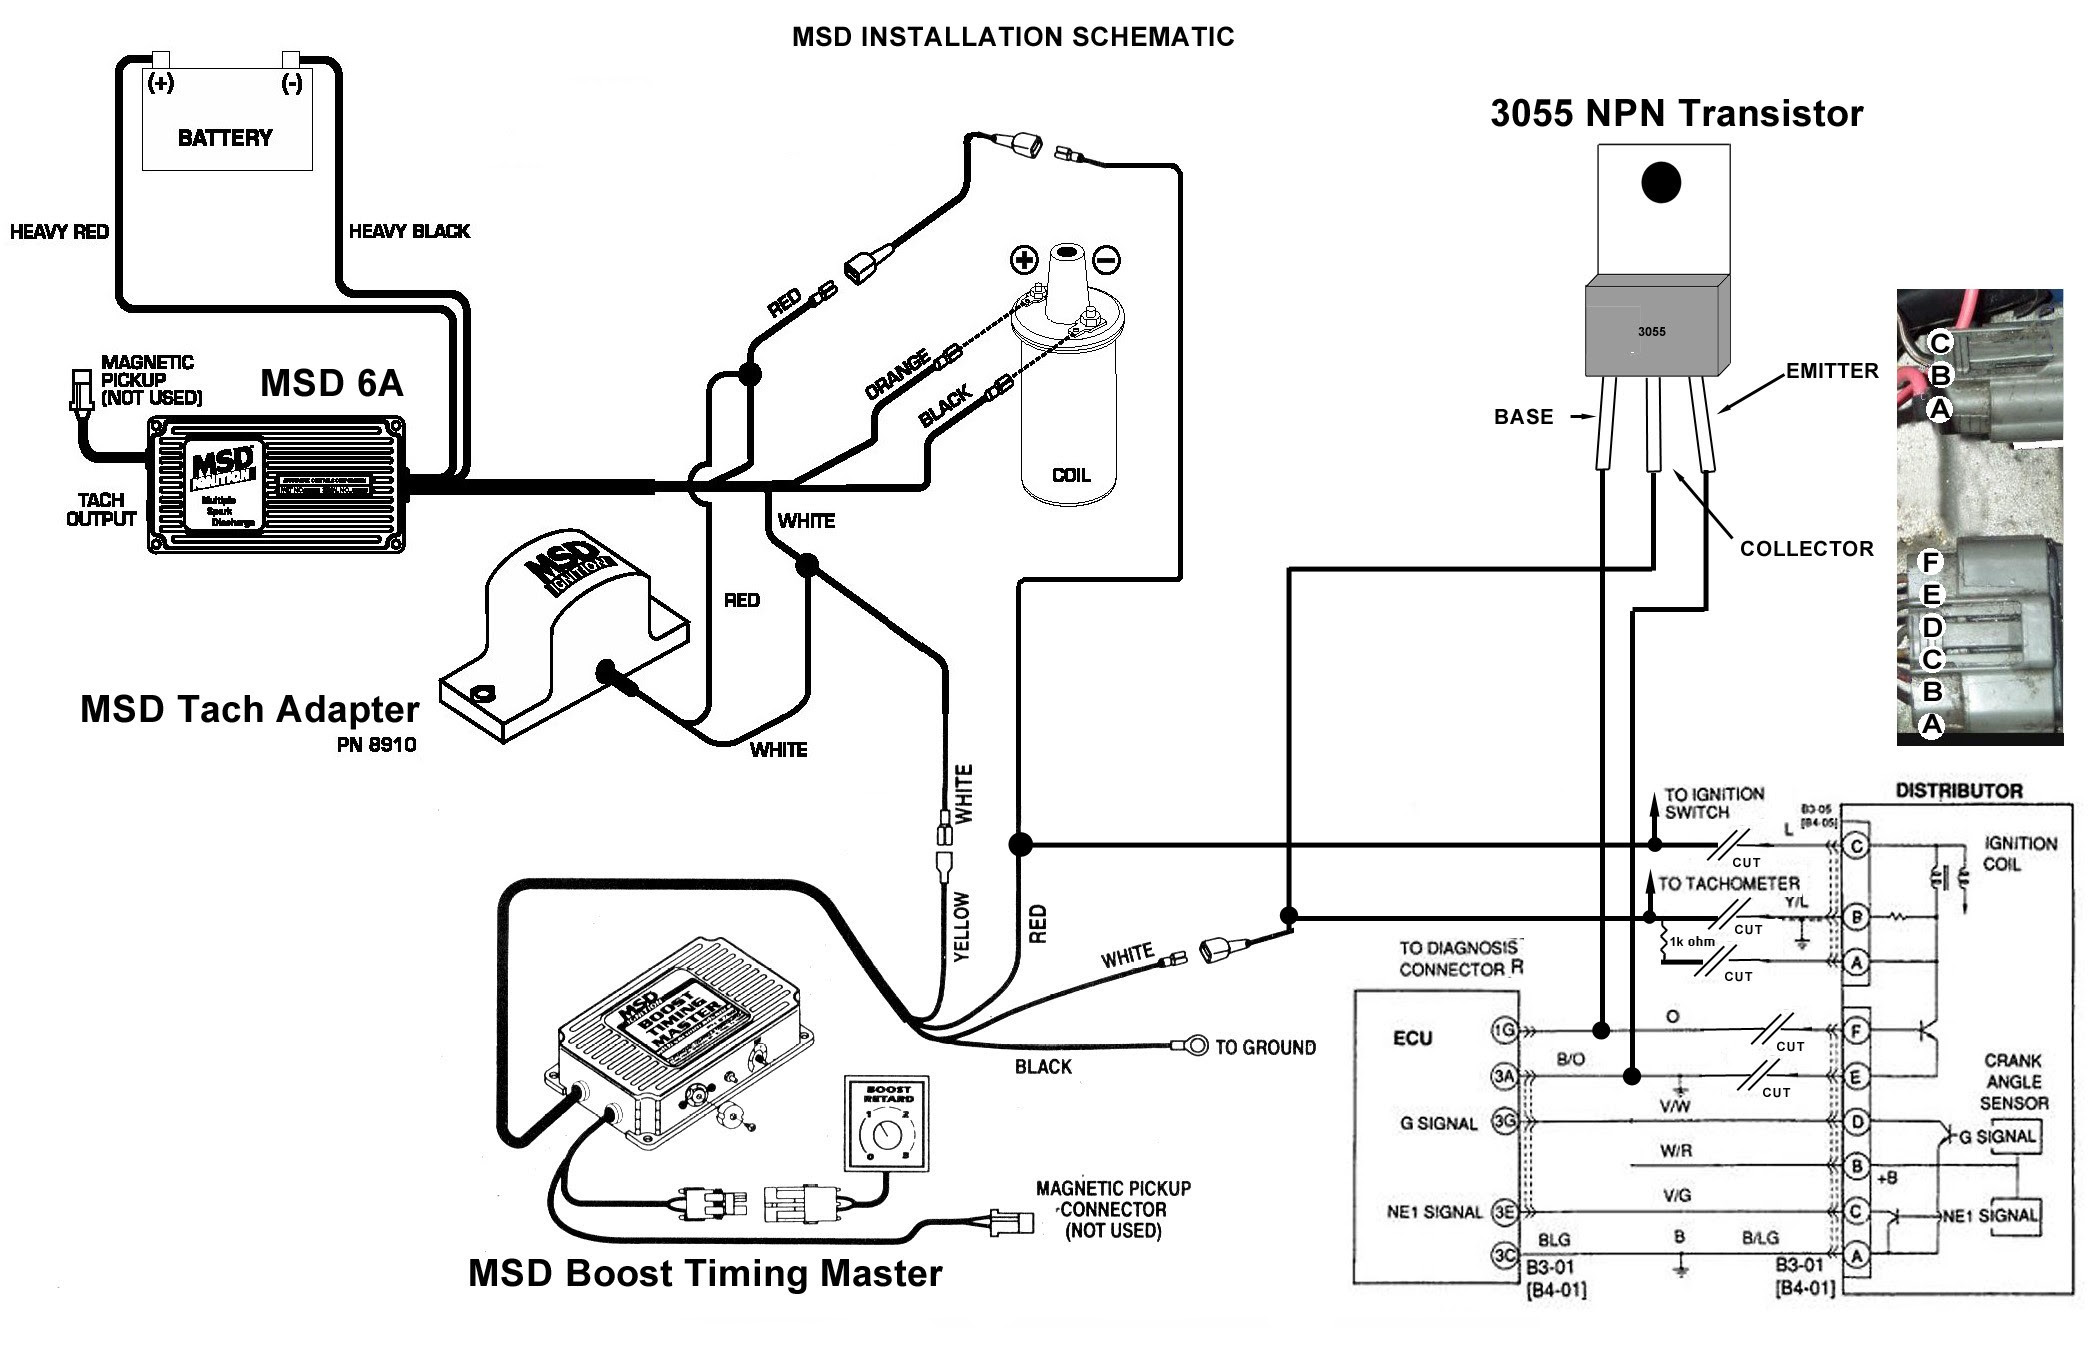 [DIAGRAM] 1996 Ford Probe Engine Wiring Diagram FULL